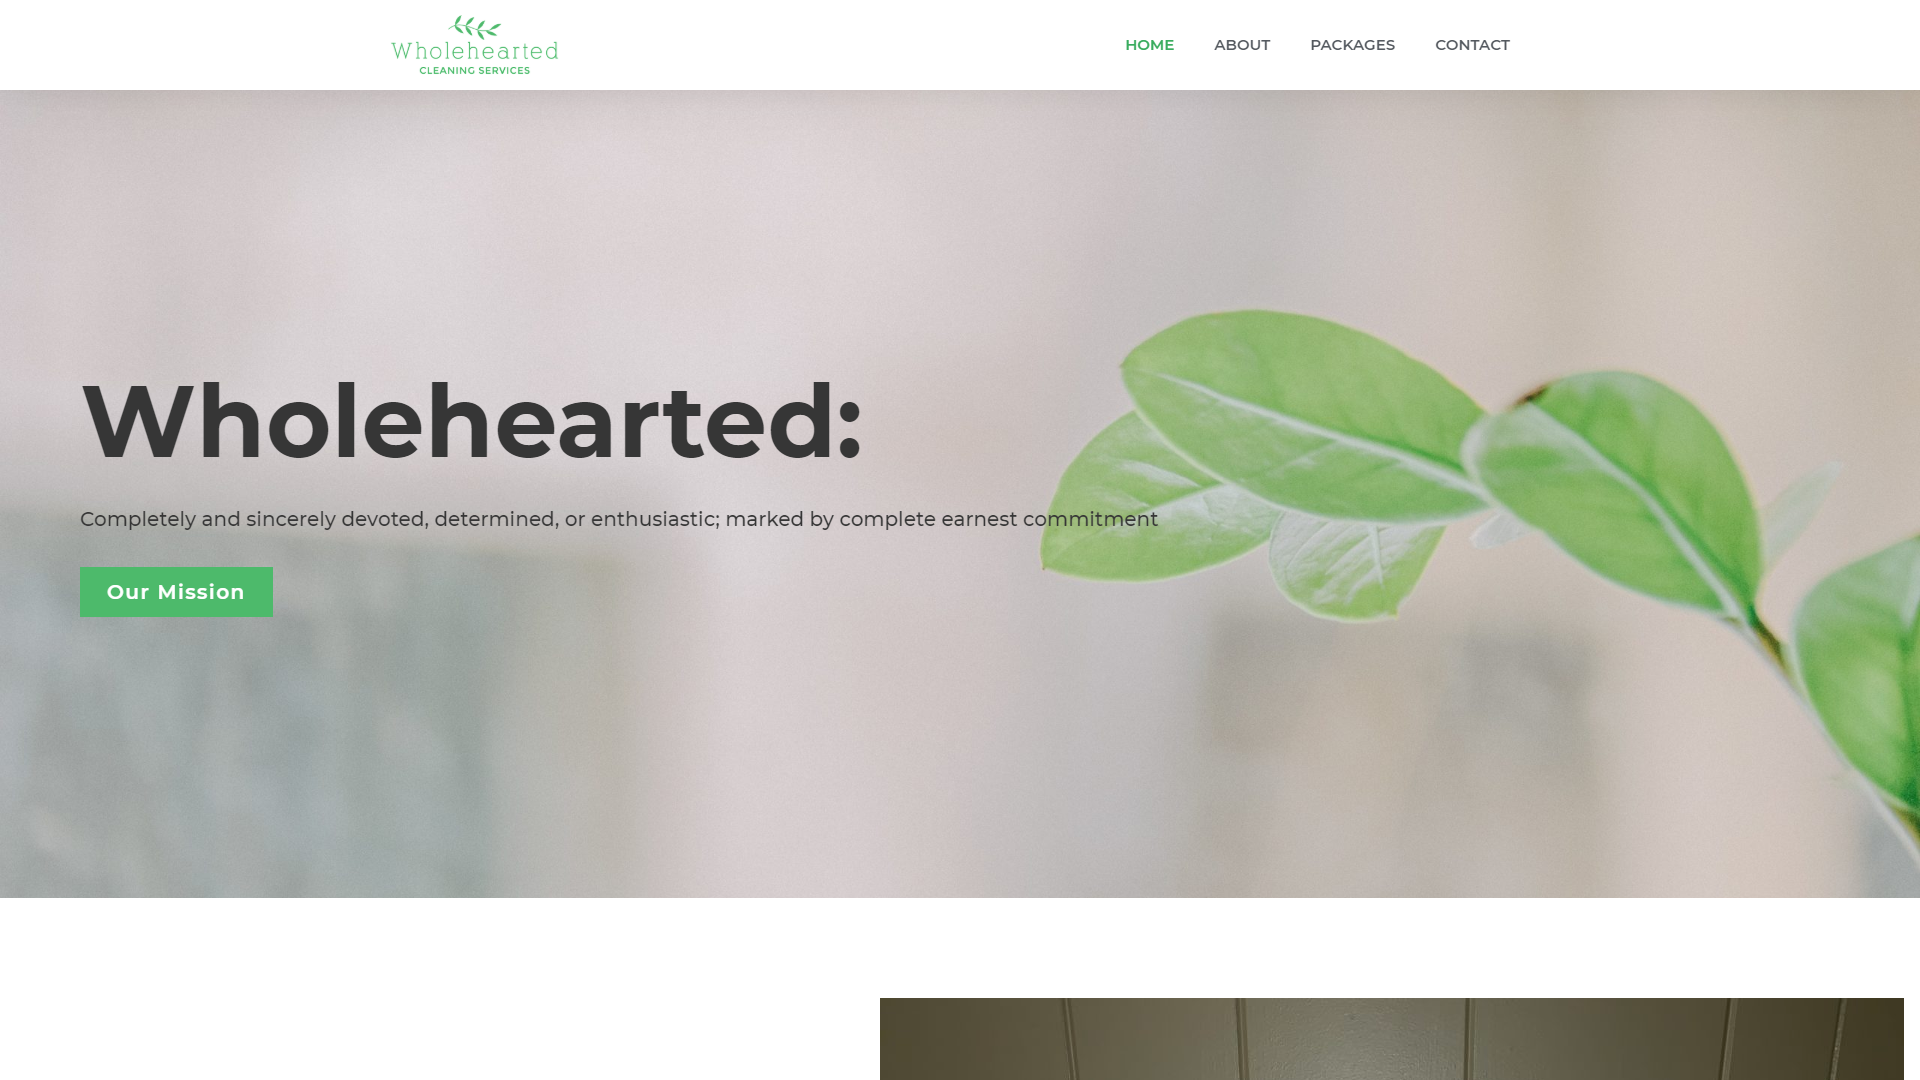 Wholehearted Cleaning Services